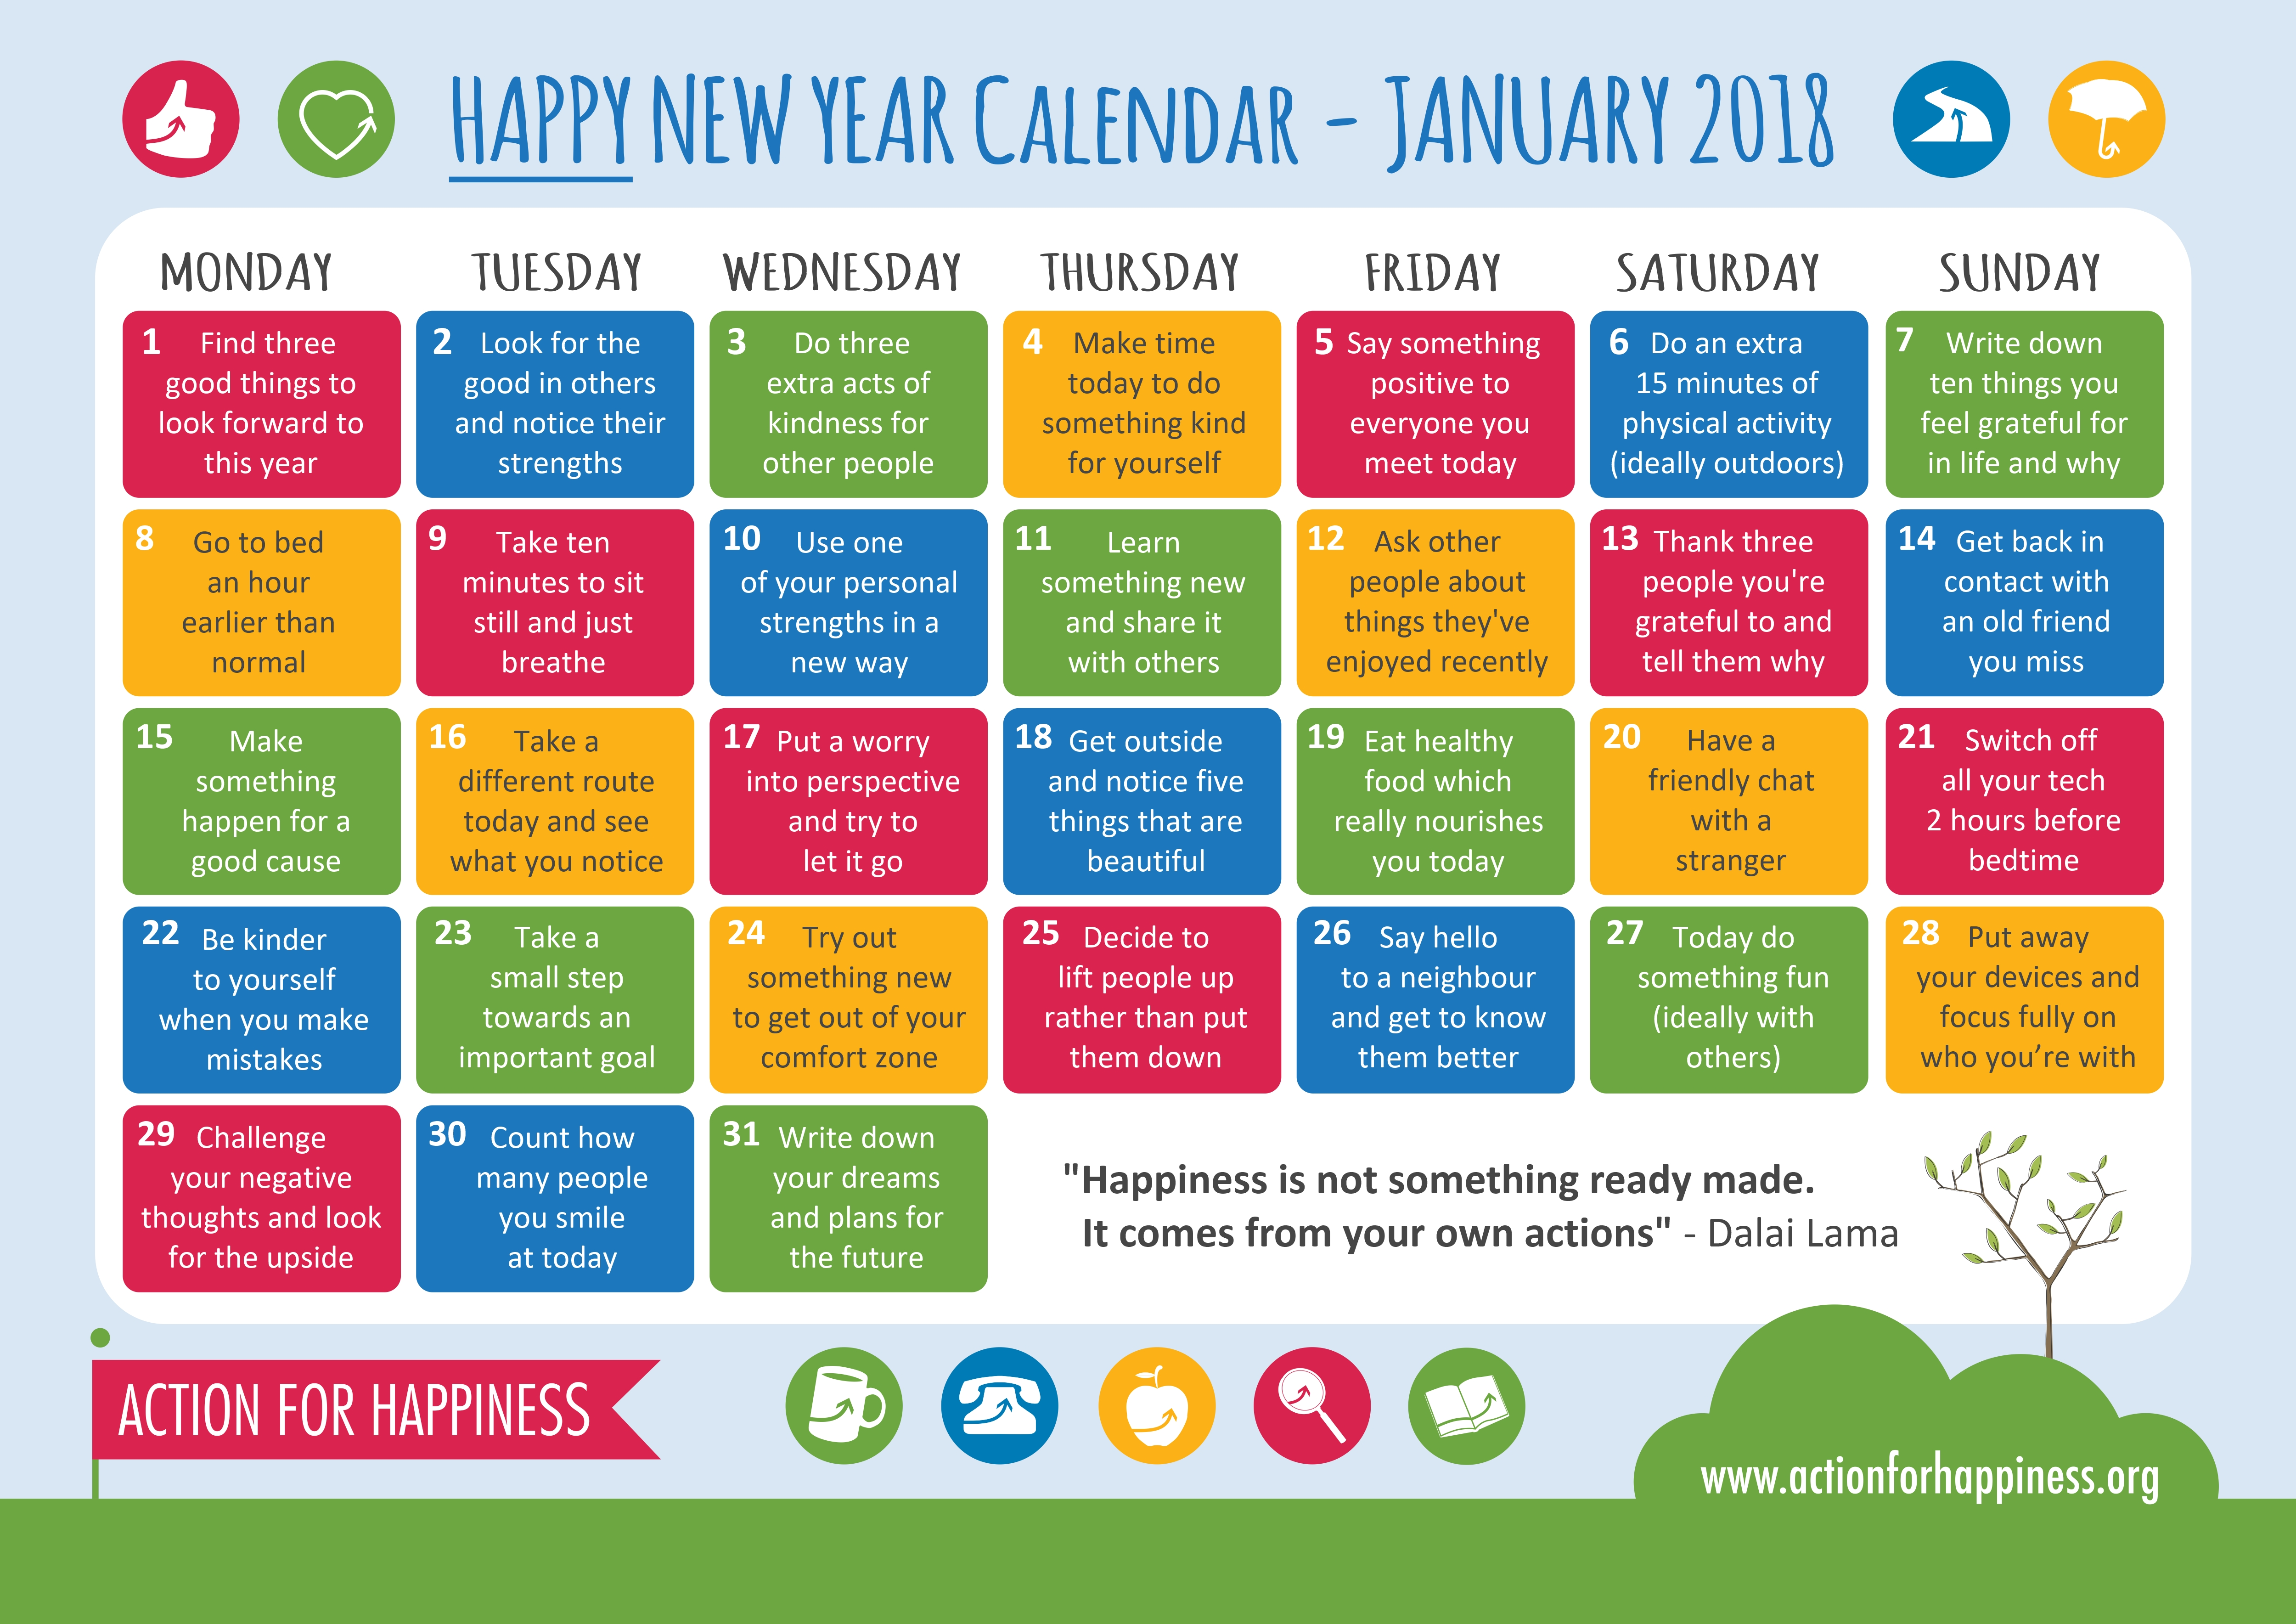 Action for happiness jan calander